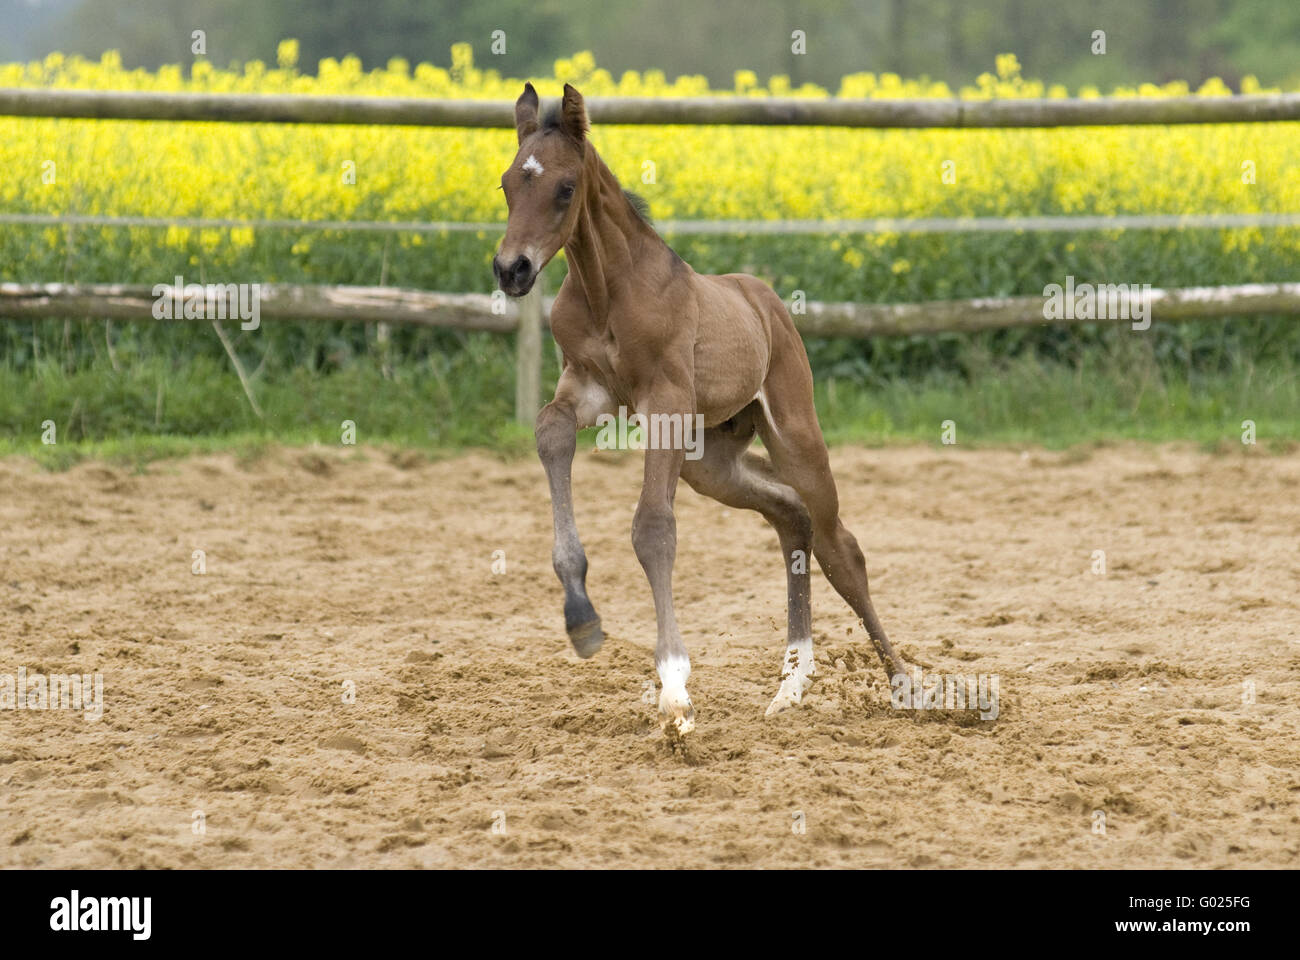 foal, young stallion - Stock Image